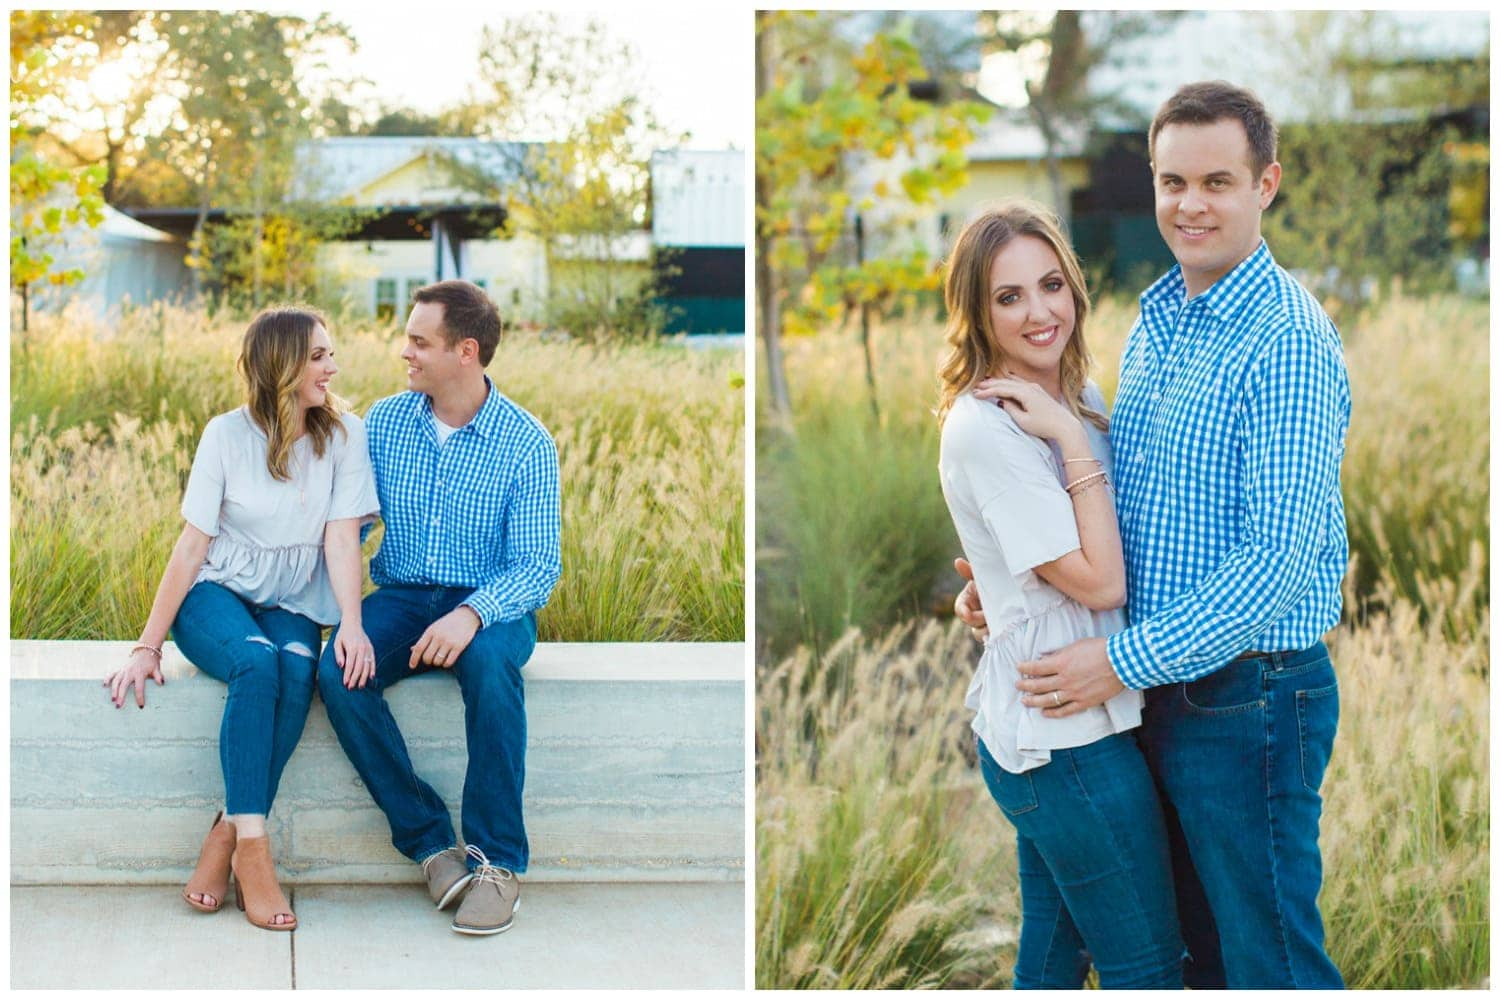 couples photo poses for family pictures